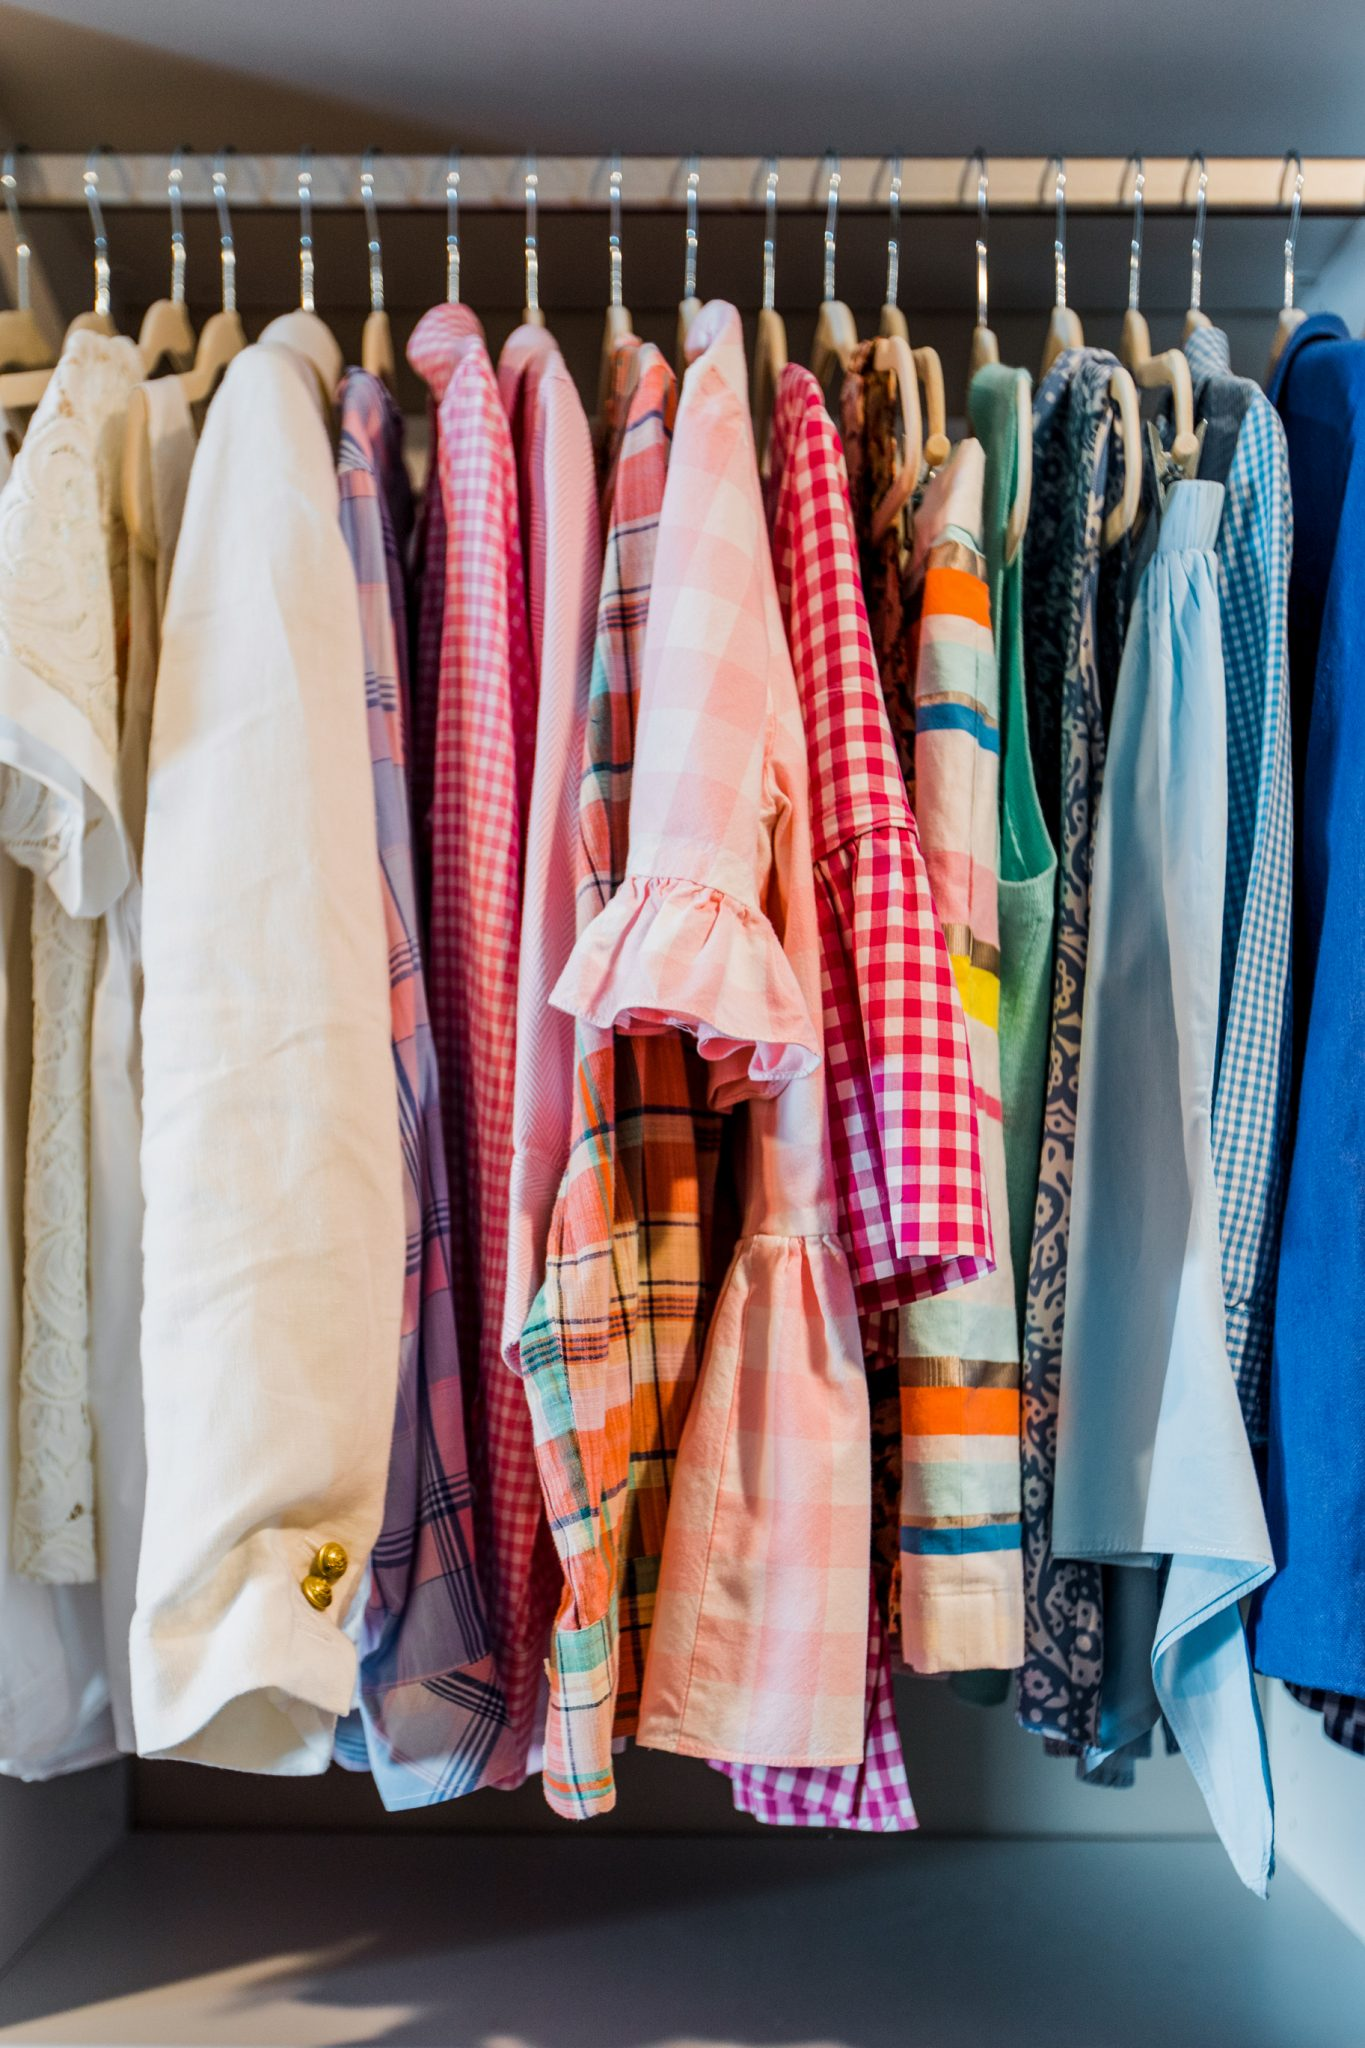 Declutter and organize your closet with KonMari this spring